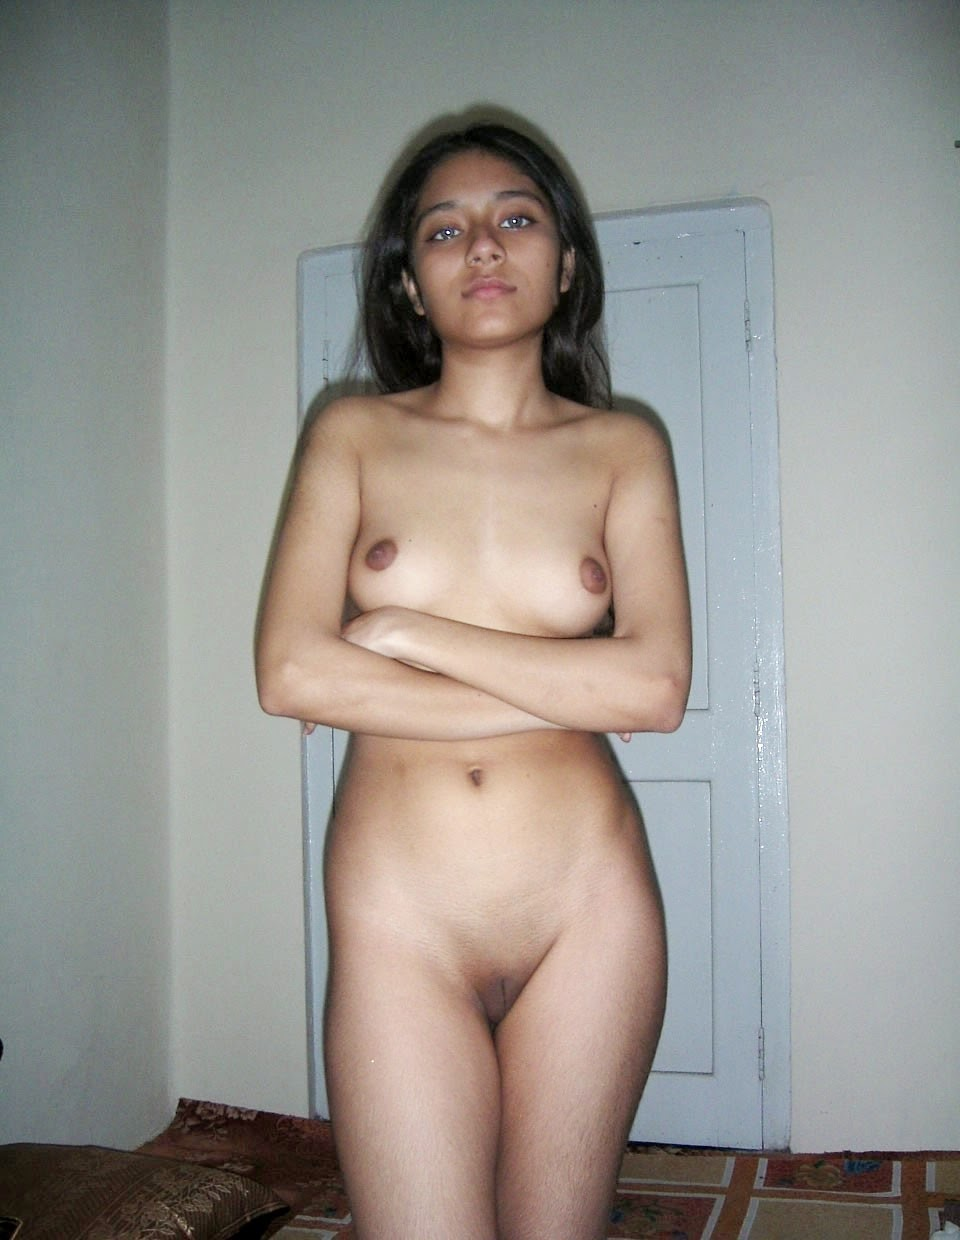 Nude girl with gauges